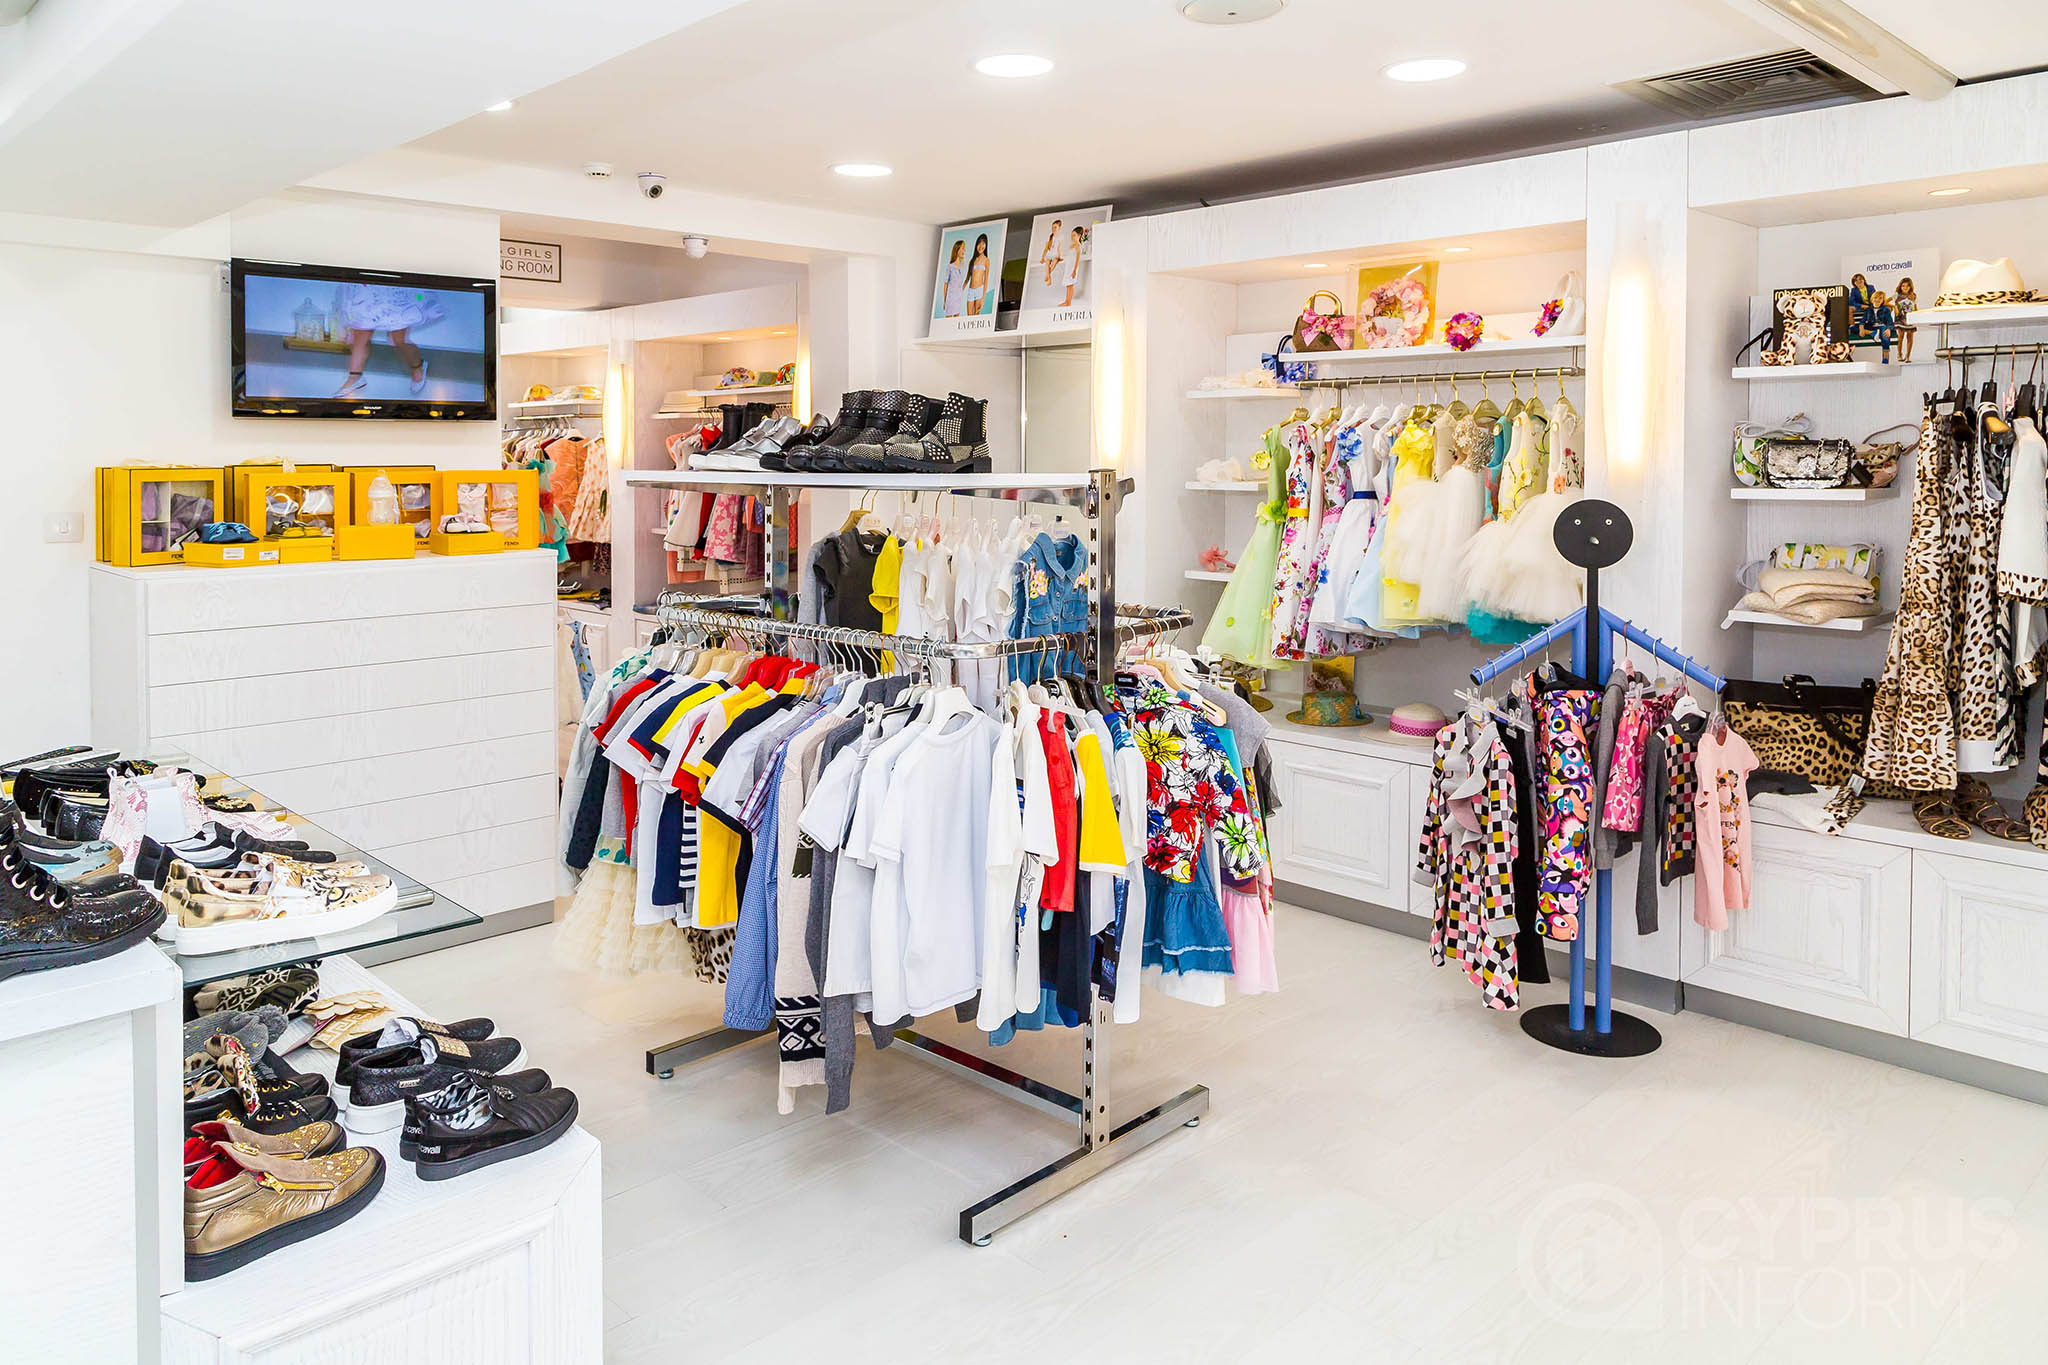 Offering a variety of kids' clothing, toys, shoes, baby accessories (not to mention spectacular kids' birthday gifts), Two Kids and a Dog is a great place for parents, aunts, uncles and.